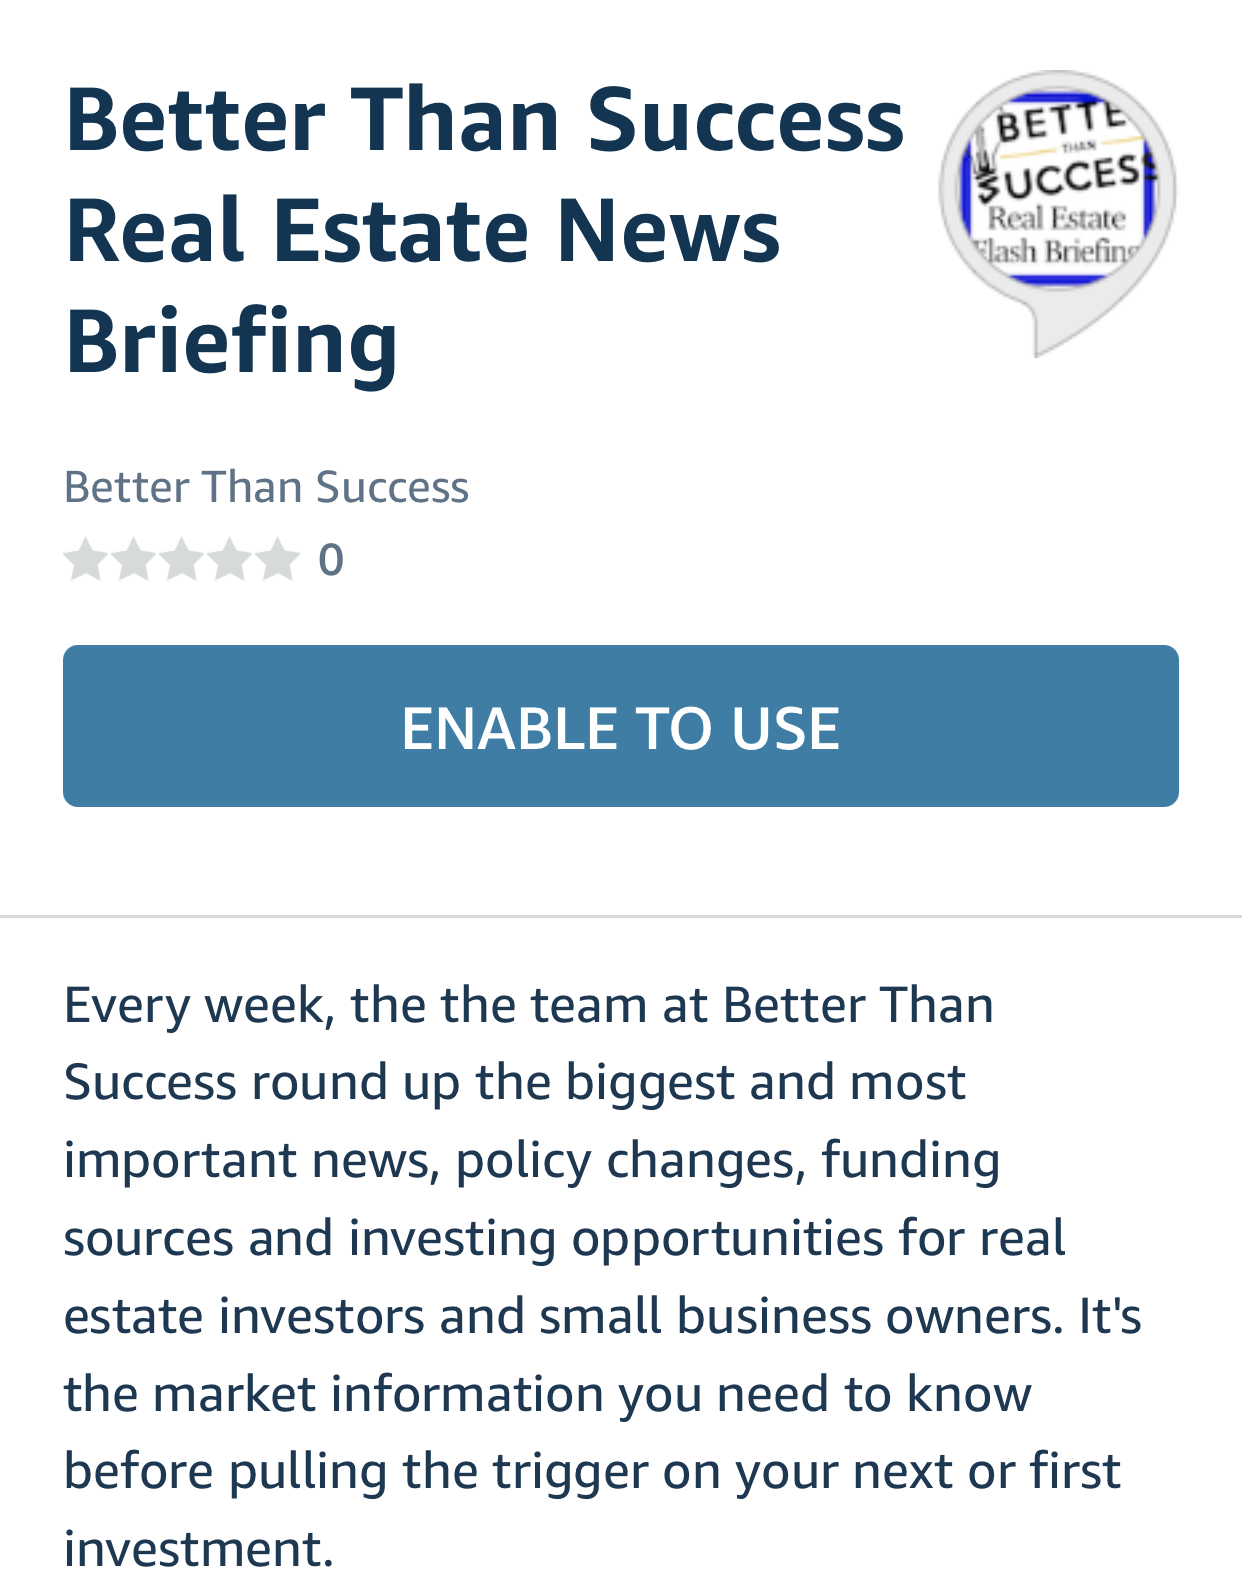 Better Than Success Real Estate News Briefing